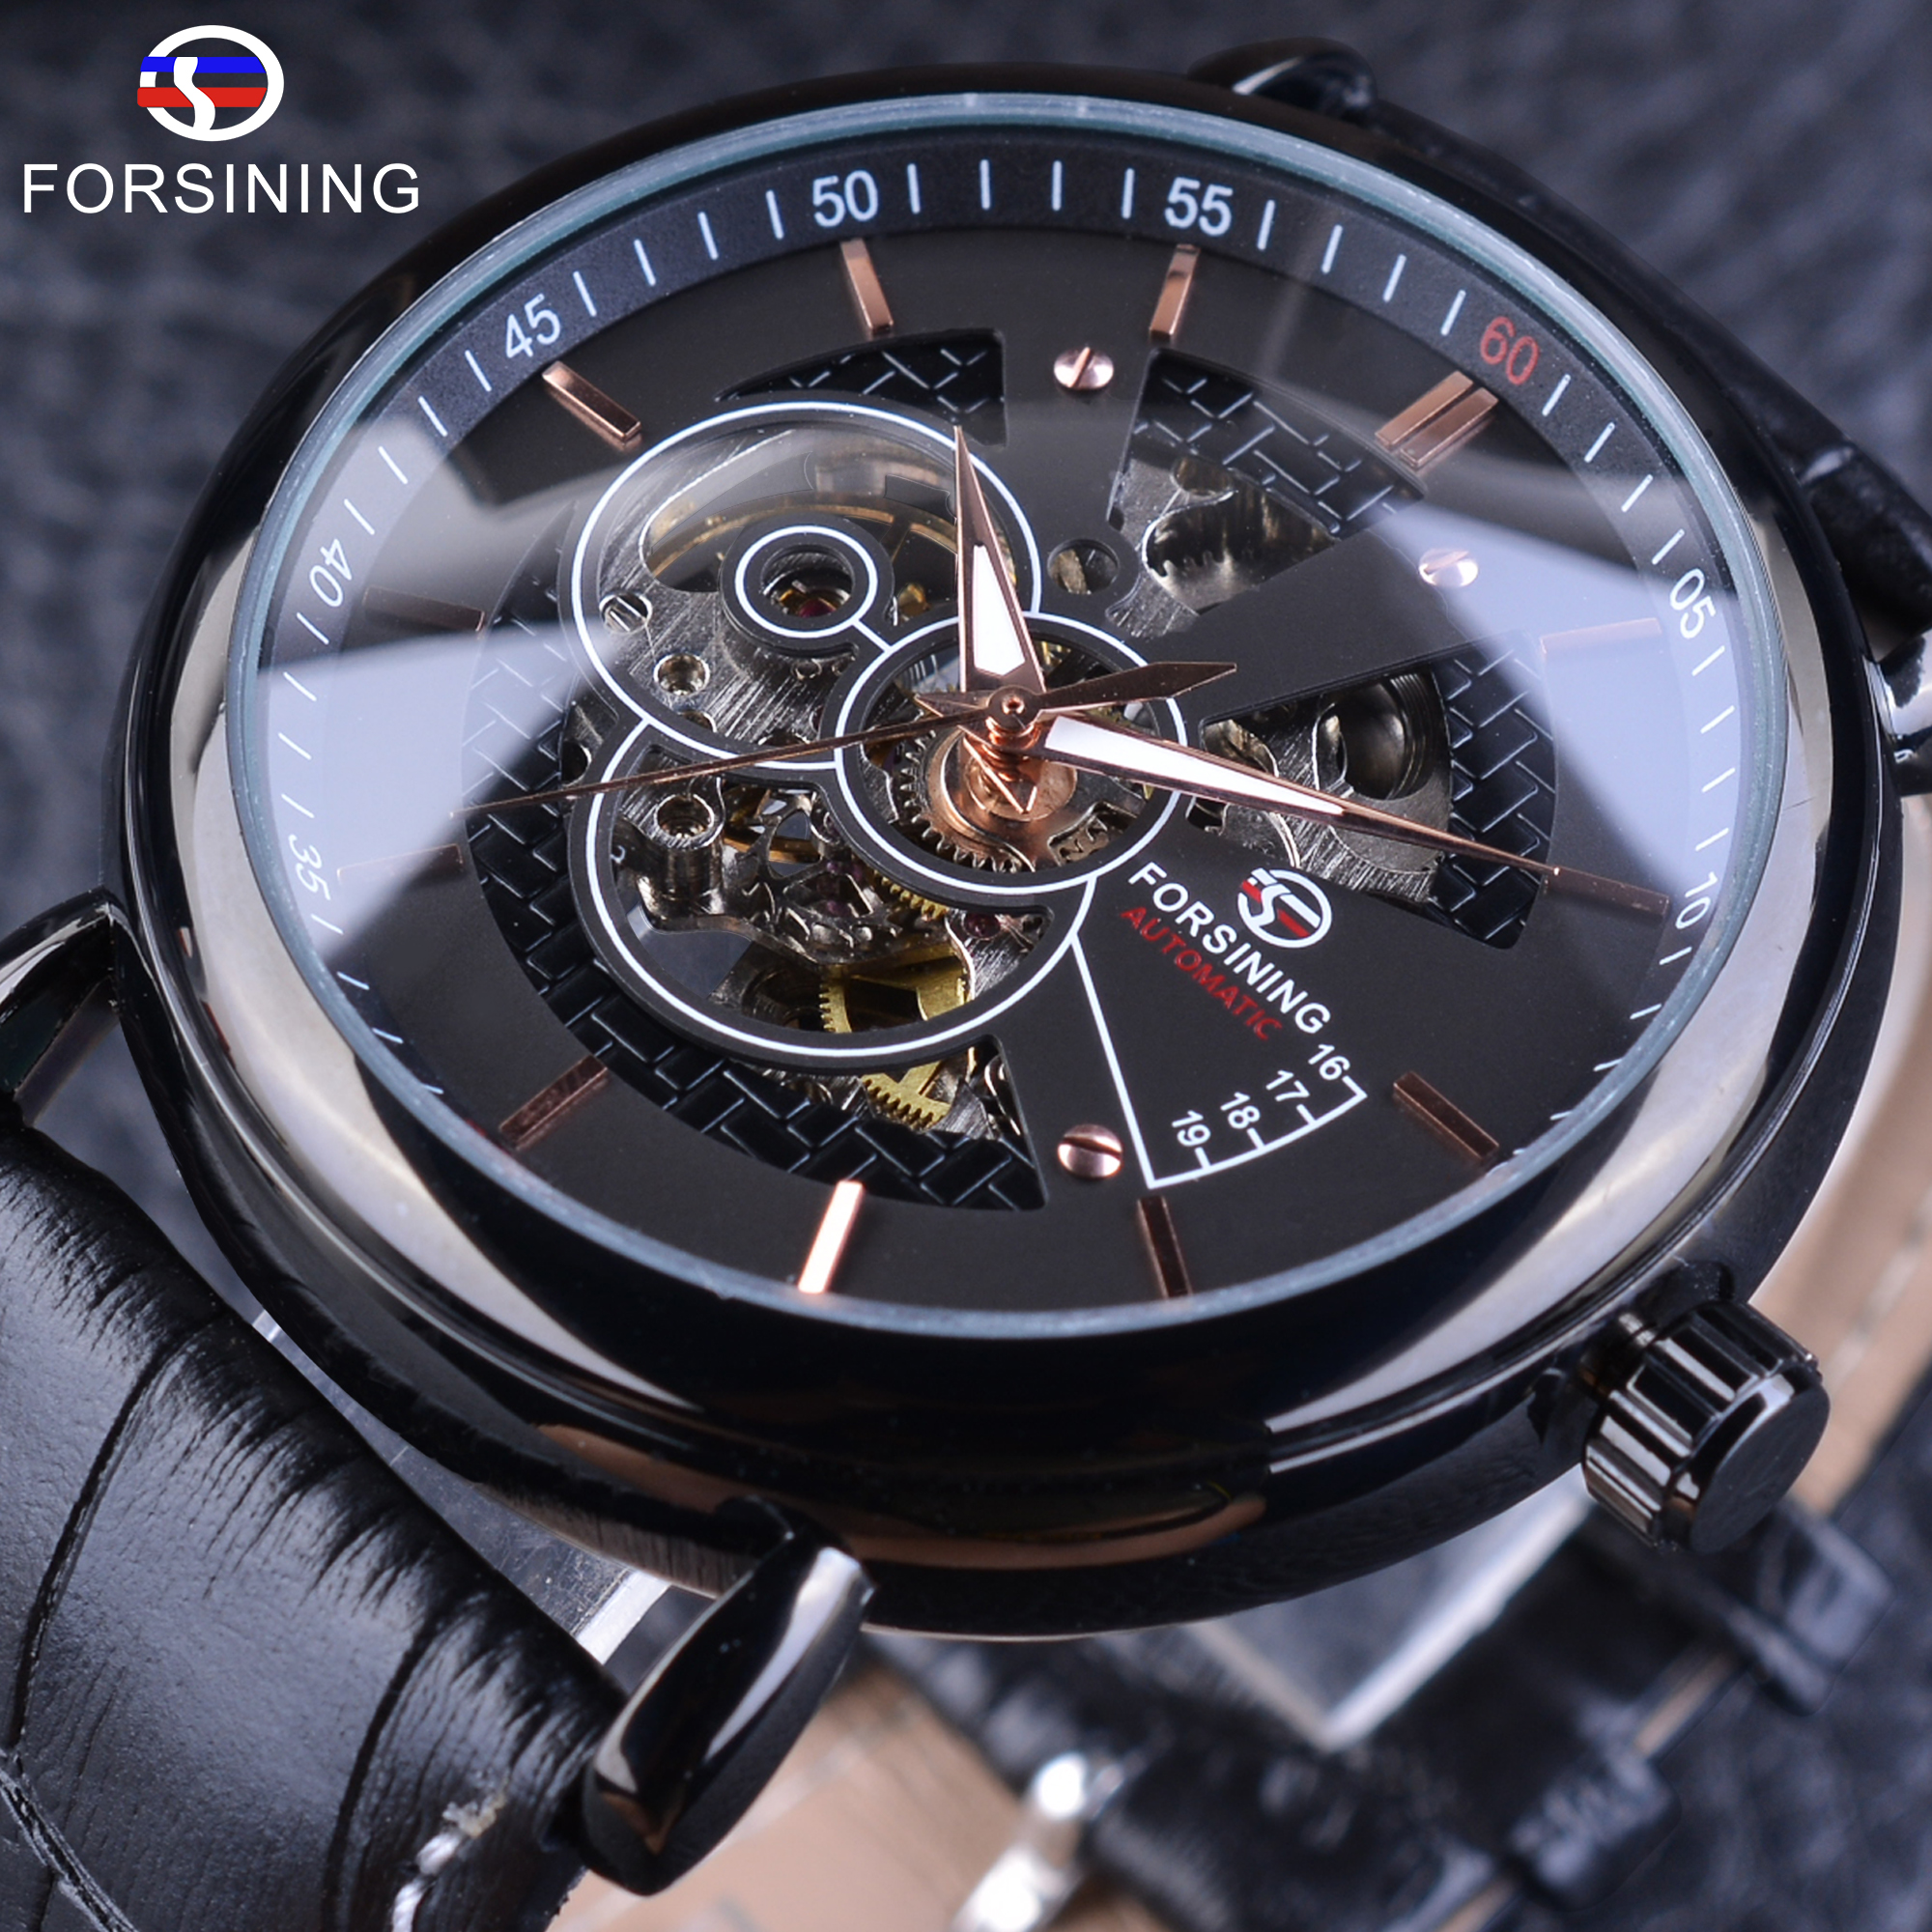 Forsining 2017 Transparent Case Self Winding Skeleton Luxury Design Mens Watch T